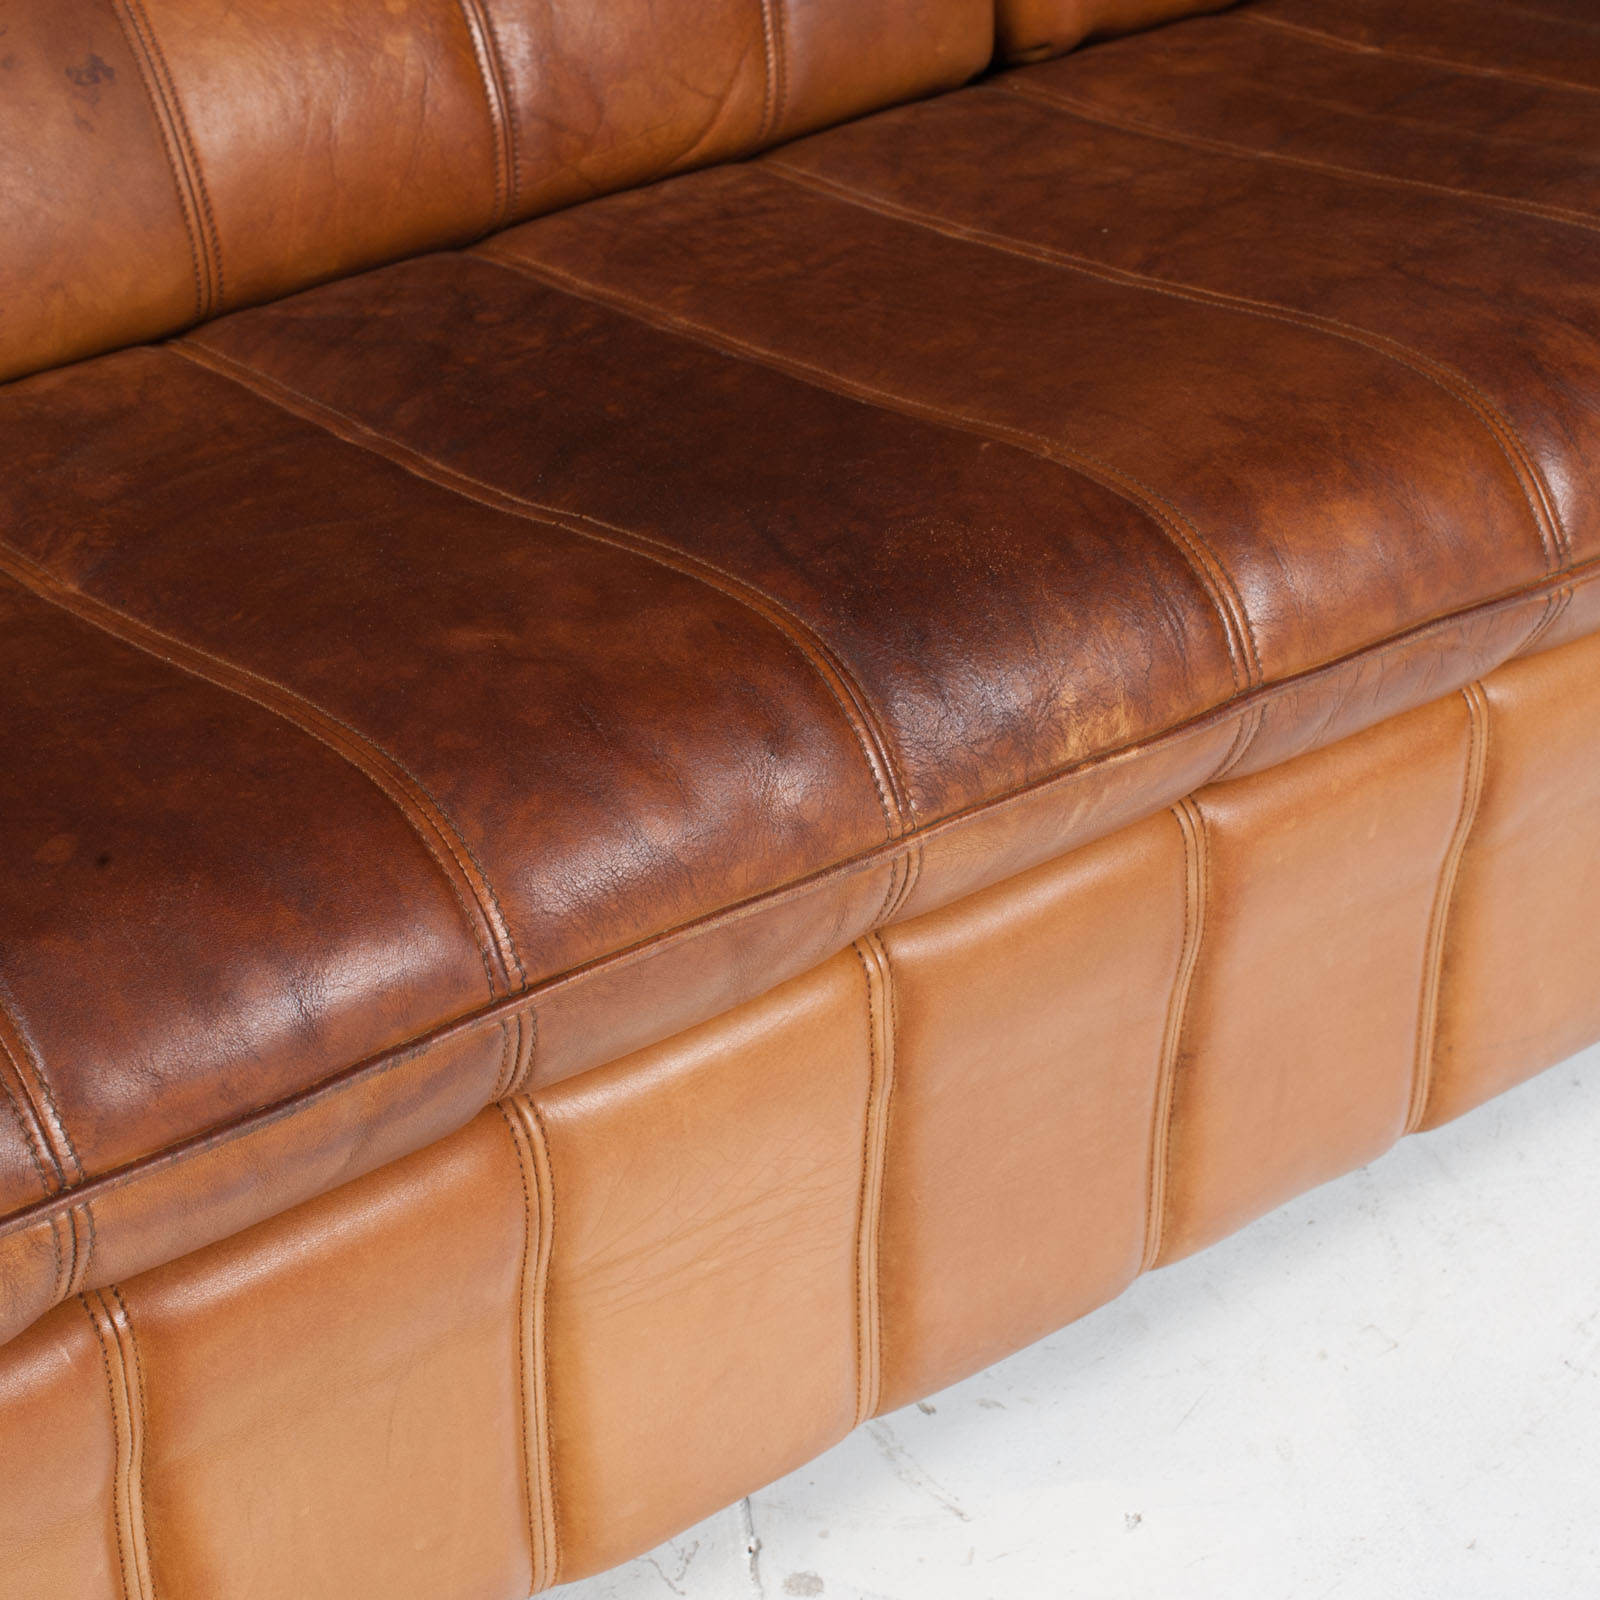 3 Seat Sofa By De Sede In Tan Leather 1970s Switzerland 09